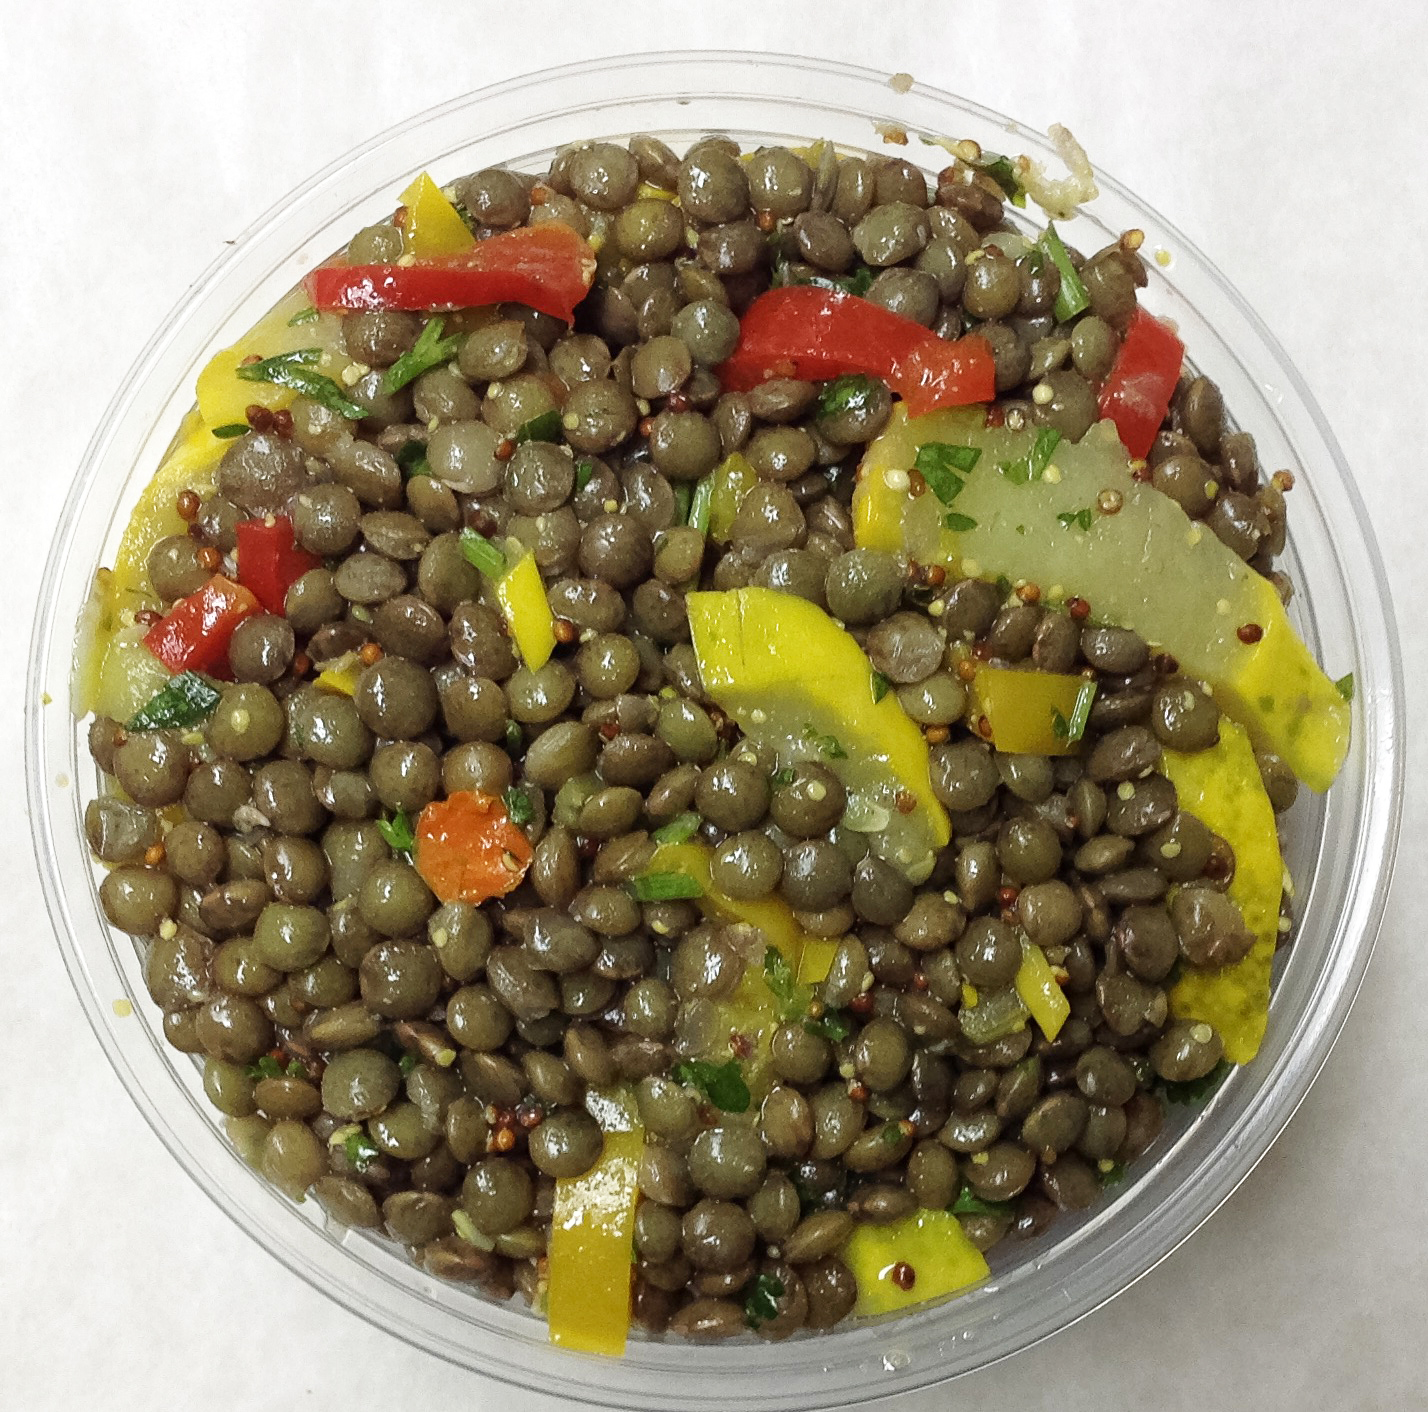 lentils-with-bell-peppers.jpg